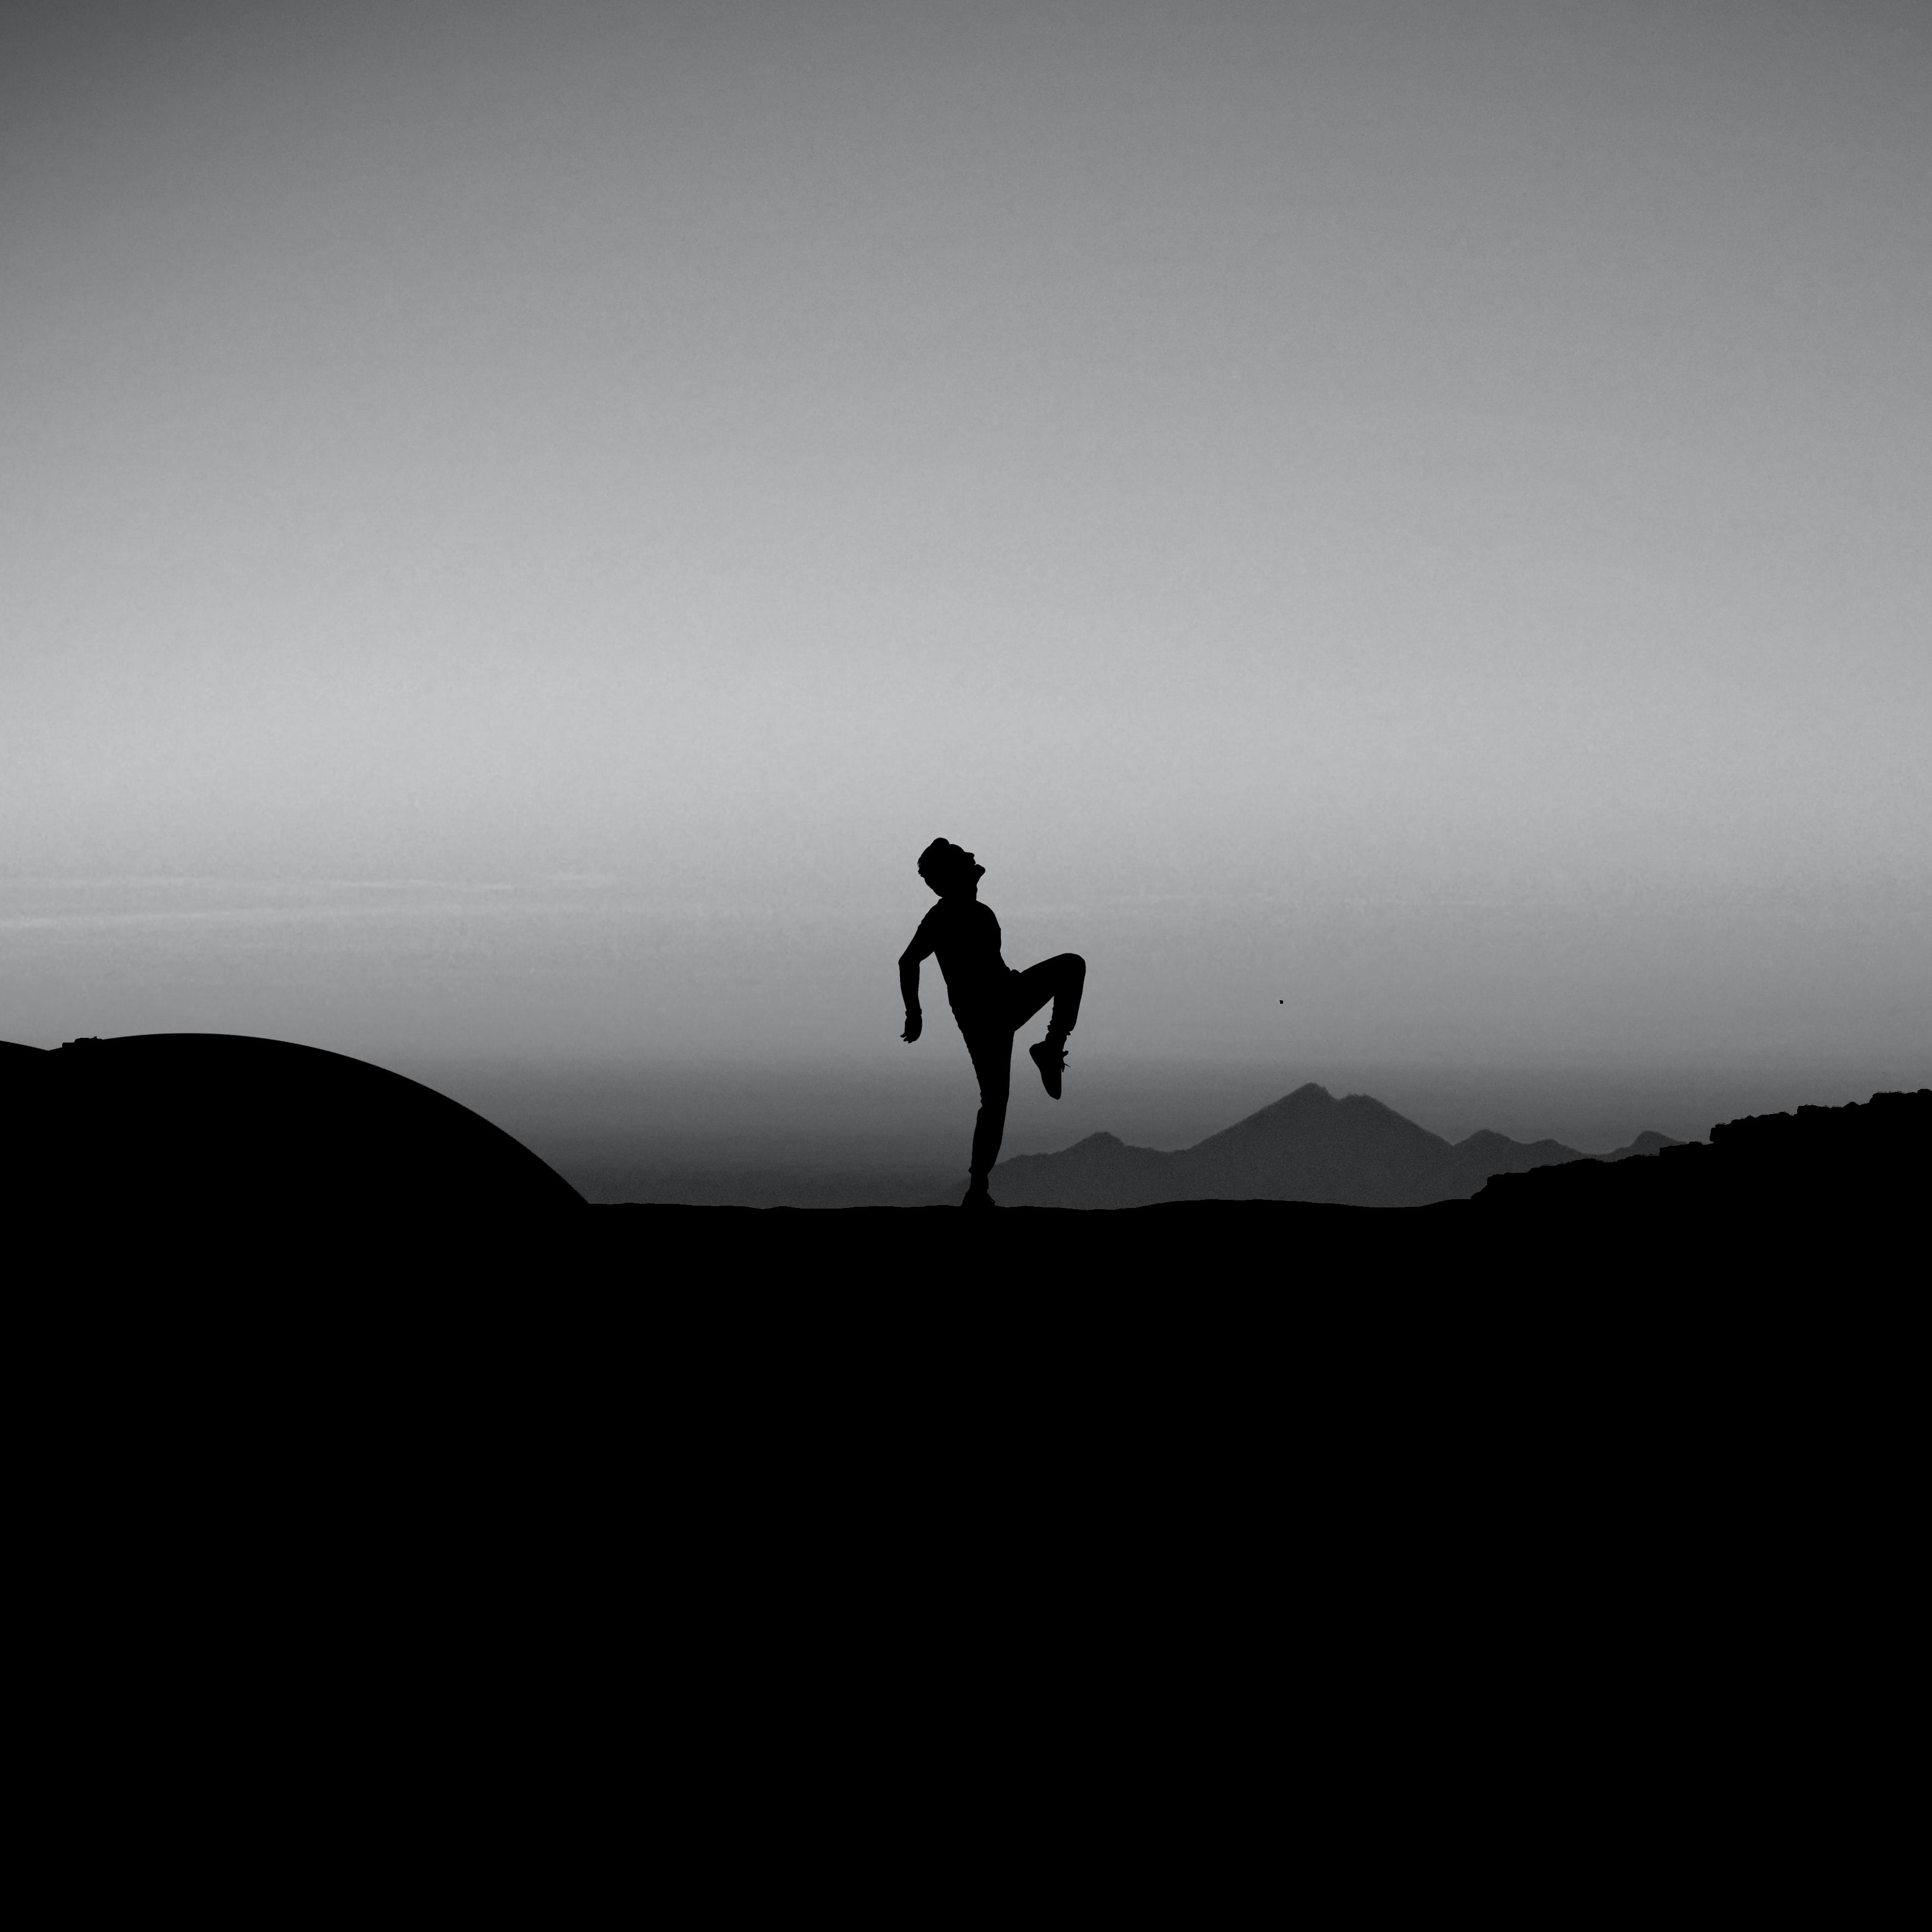 silhouette photography of man standing with one leg on ground